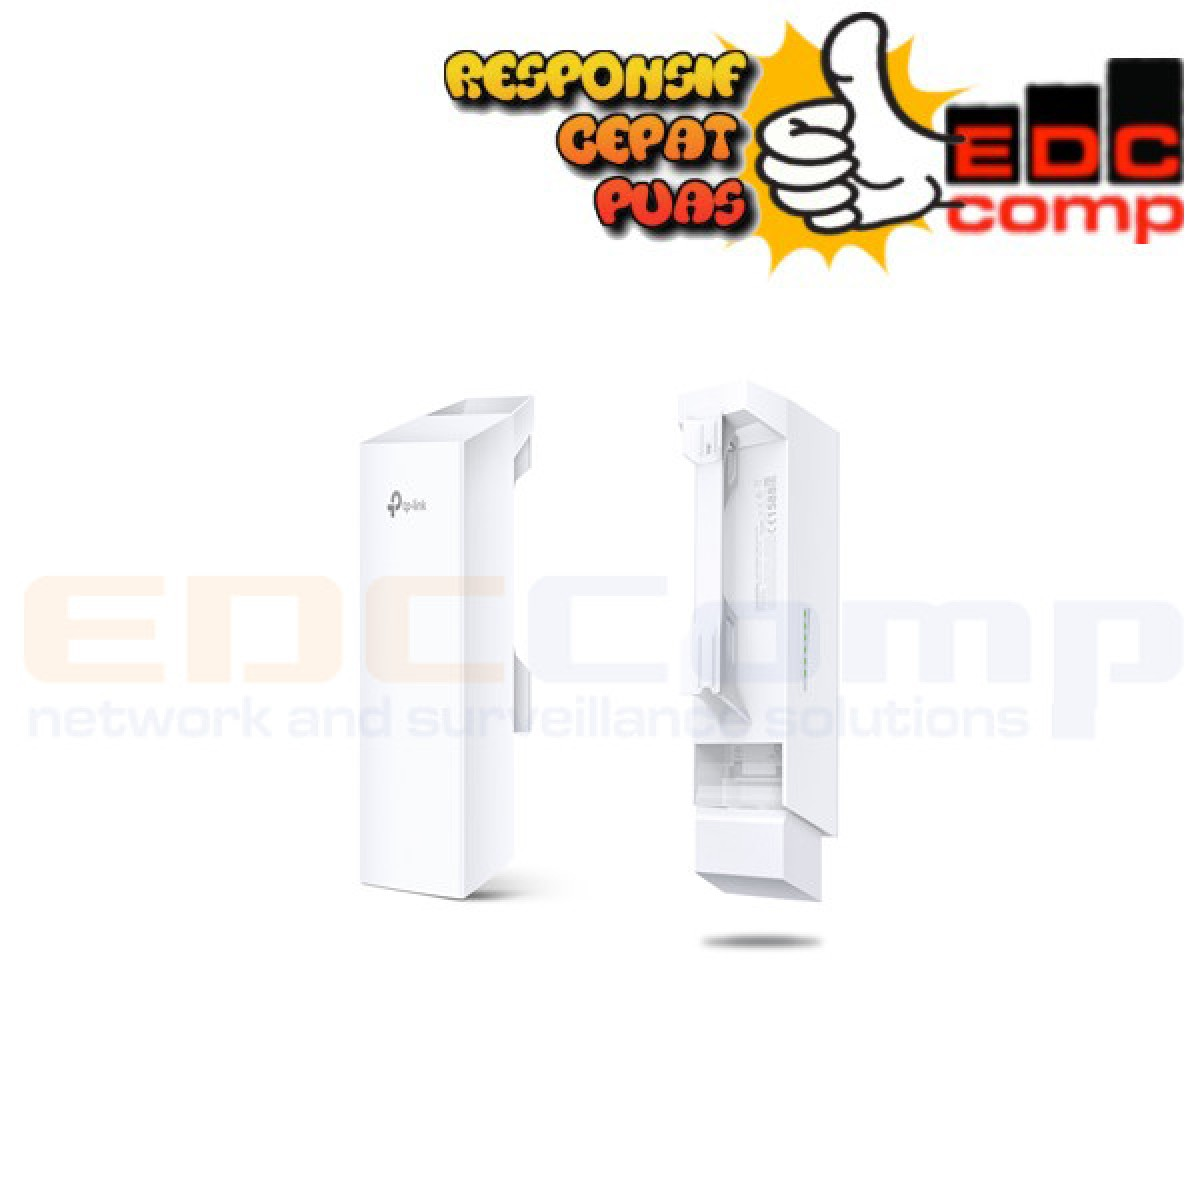 Wireless Outdoor 2.4GHz 300Mbps 9dBi CPE210 TP-Link - EdcComp